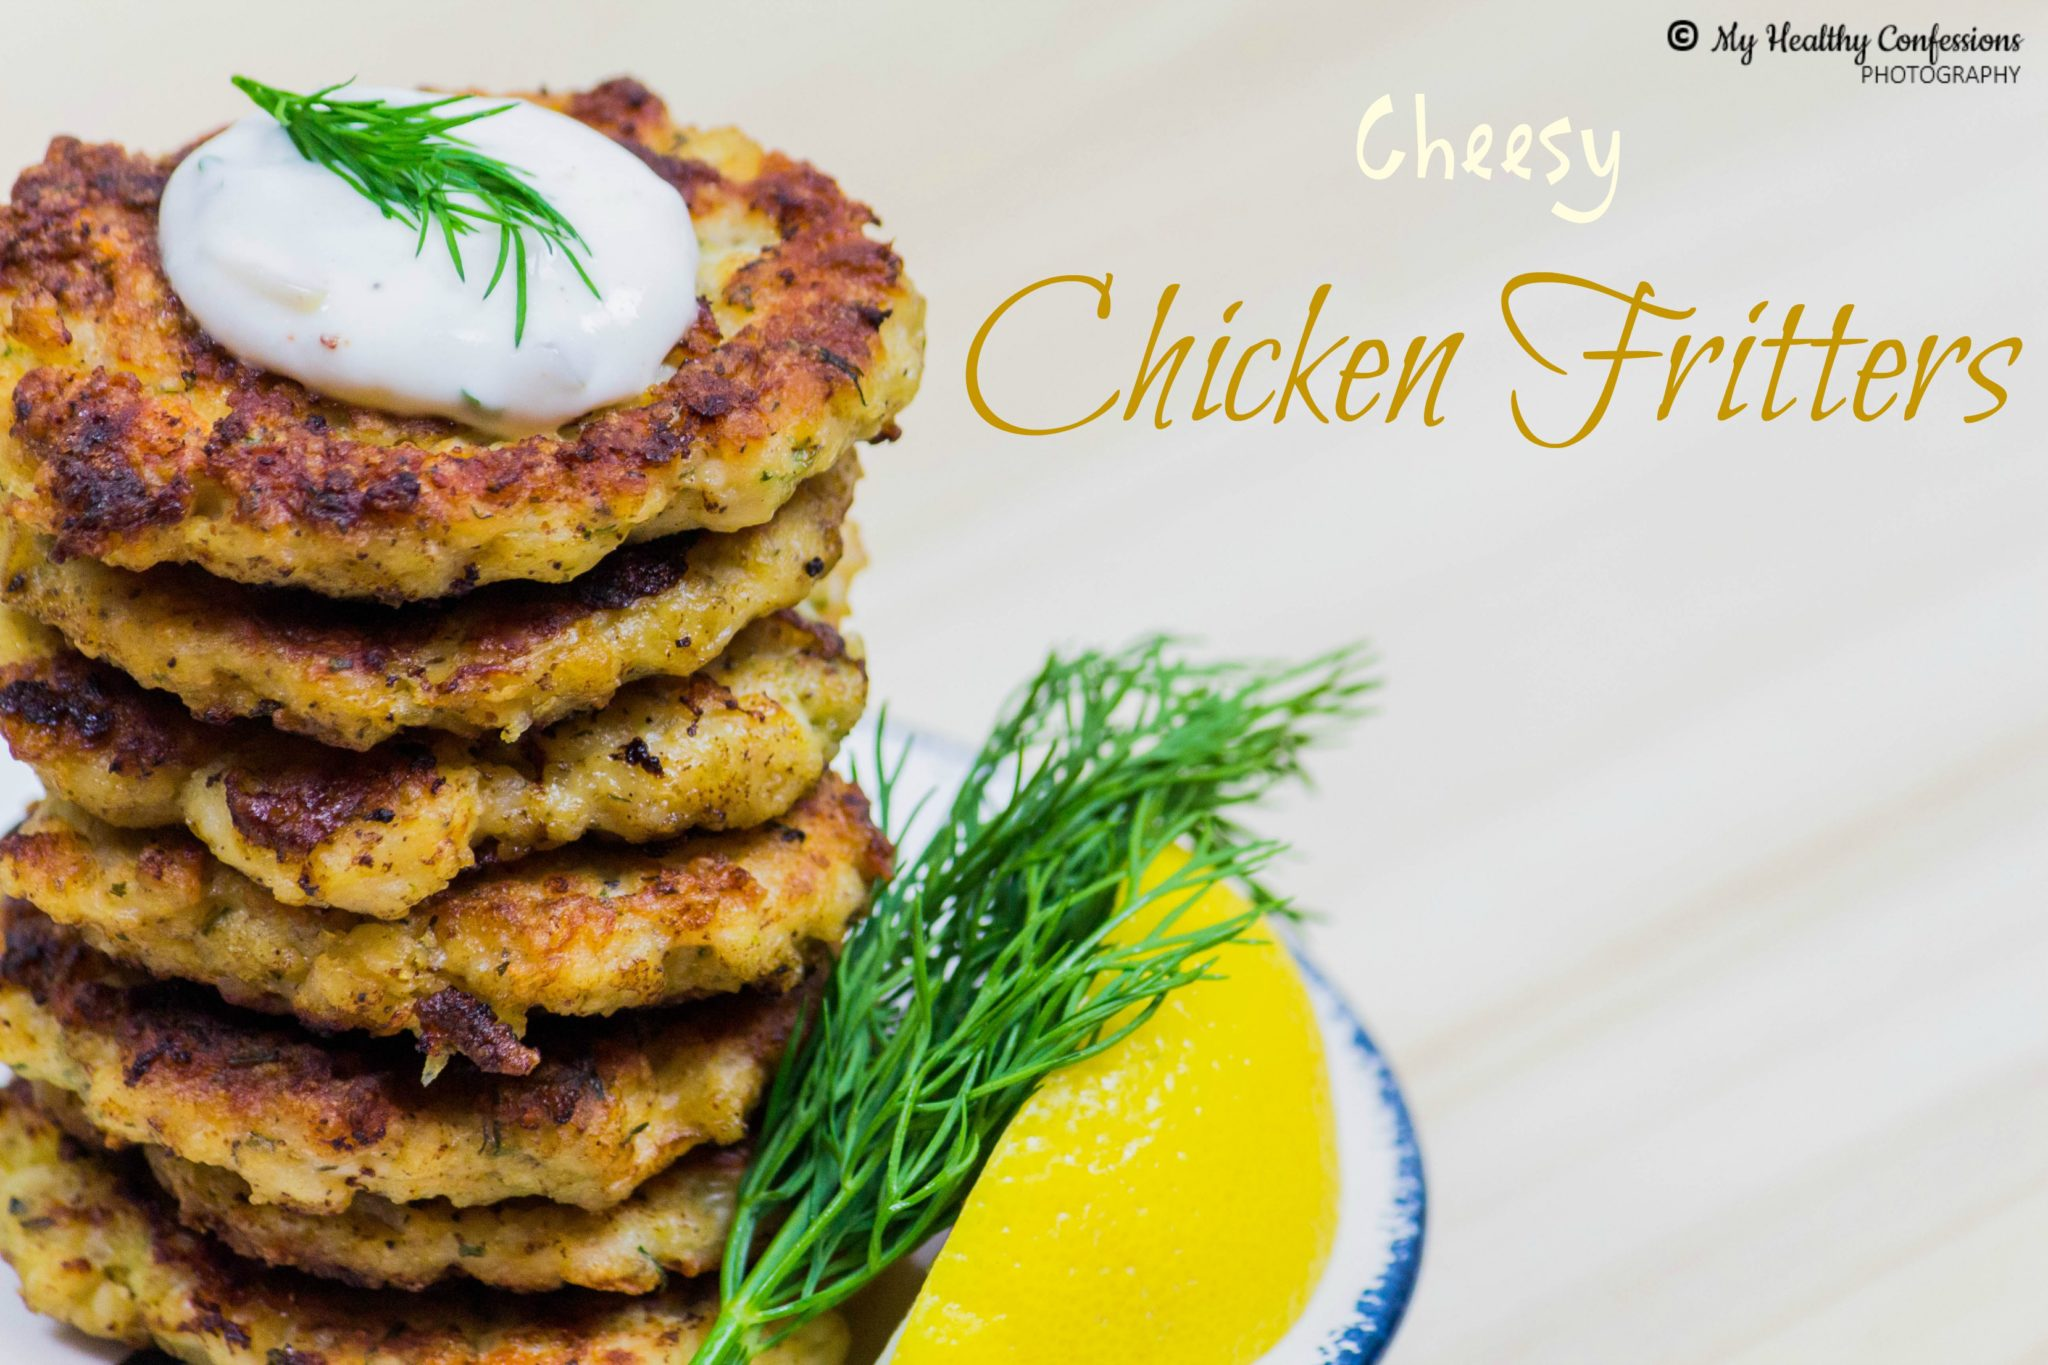 Chicken fritters with yogurt and cheese